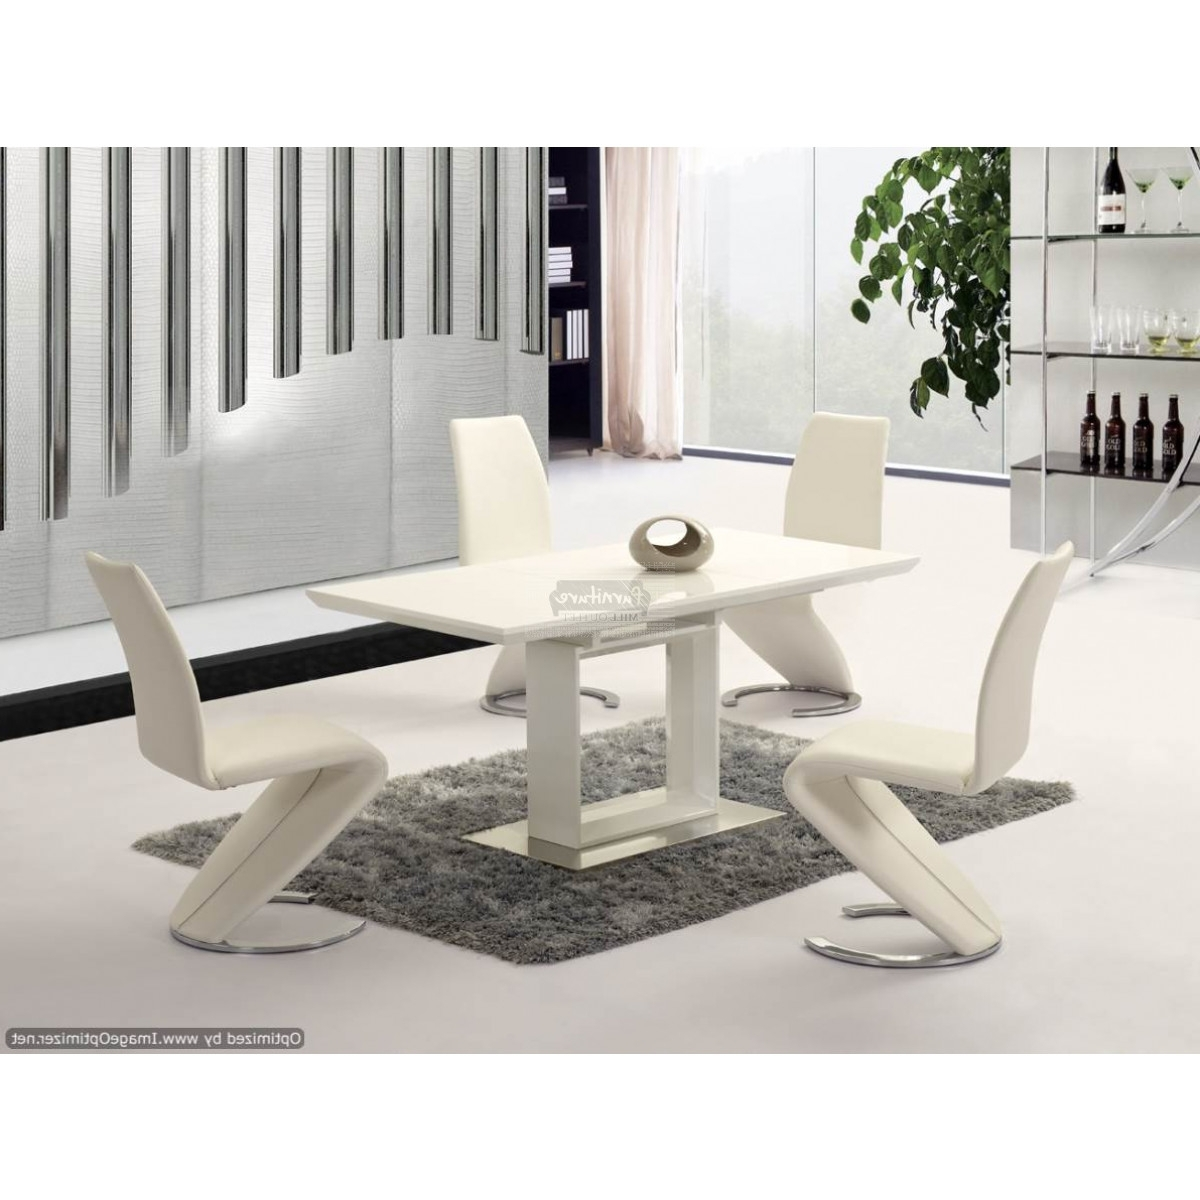 White High Gloss Dining Tables And Chairs Within Widely Used Space White High Gloss Extending Dining Table – 120Cm To 160Cm (View 11 of 25)